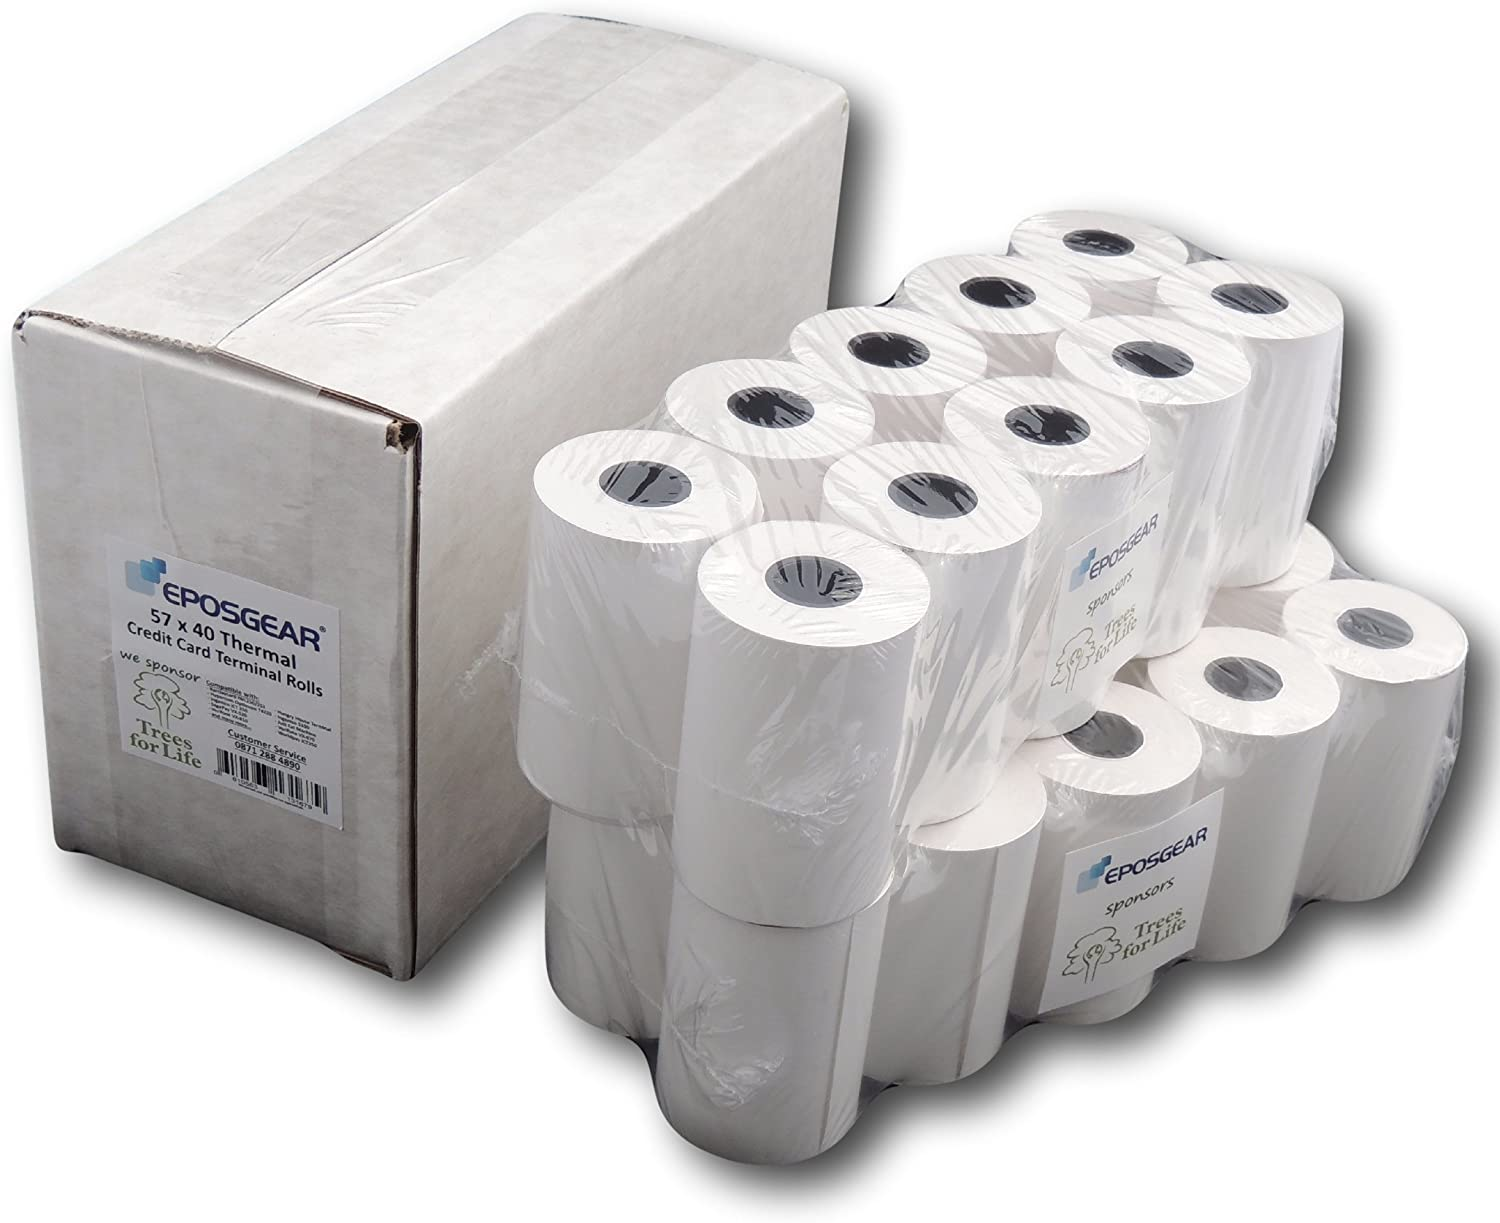 57 x 40 High Quality Thermal Credit Card Rolls 5 Rolls